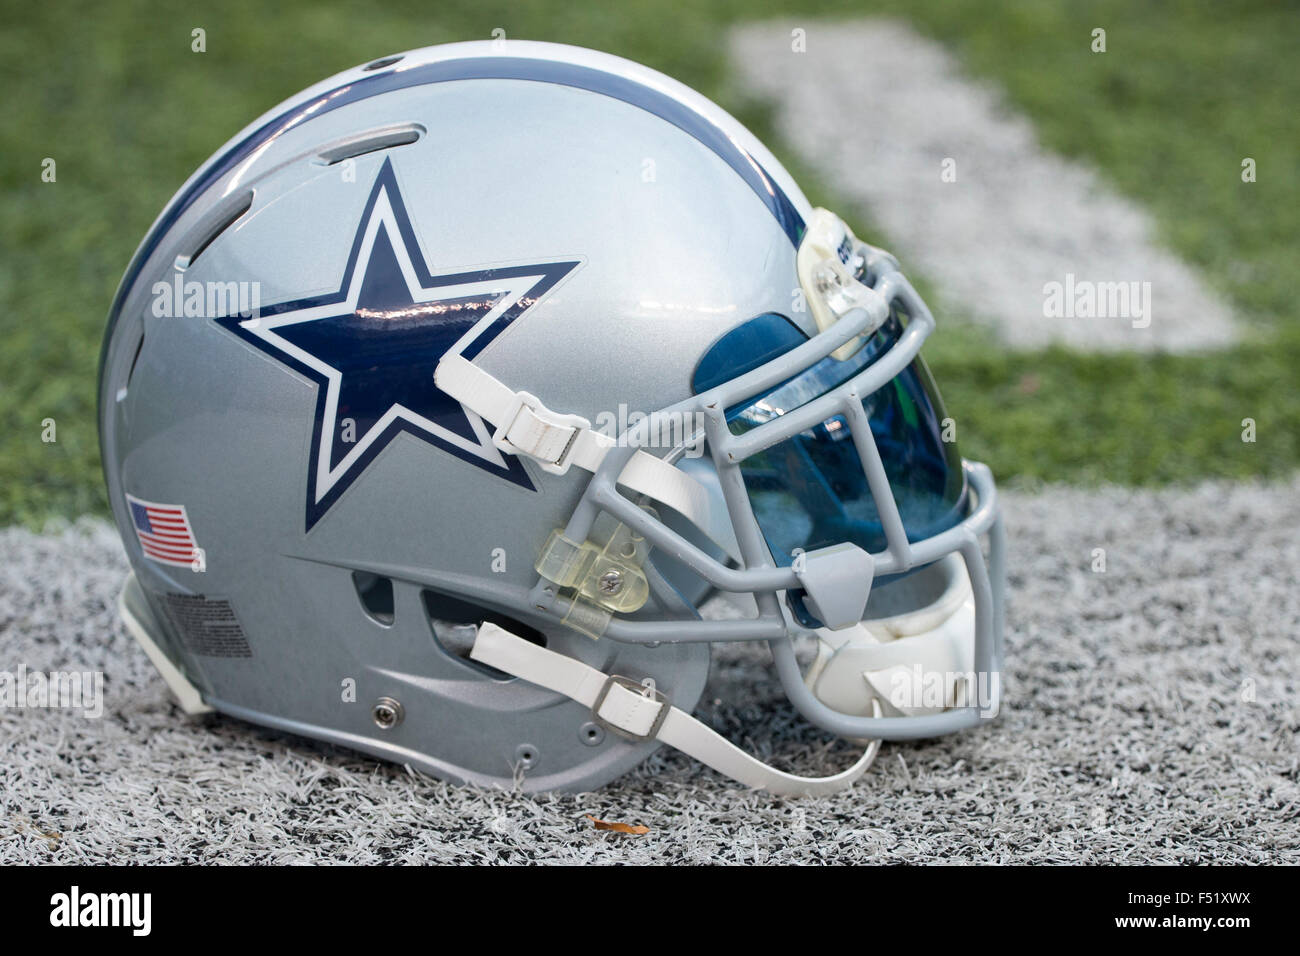 d6bfacfd7 East Rutherford, New Jersey, USA. 25th Oct, 2015. Dallas Cowboys helmet